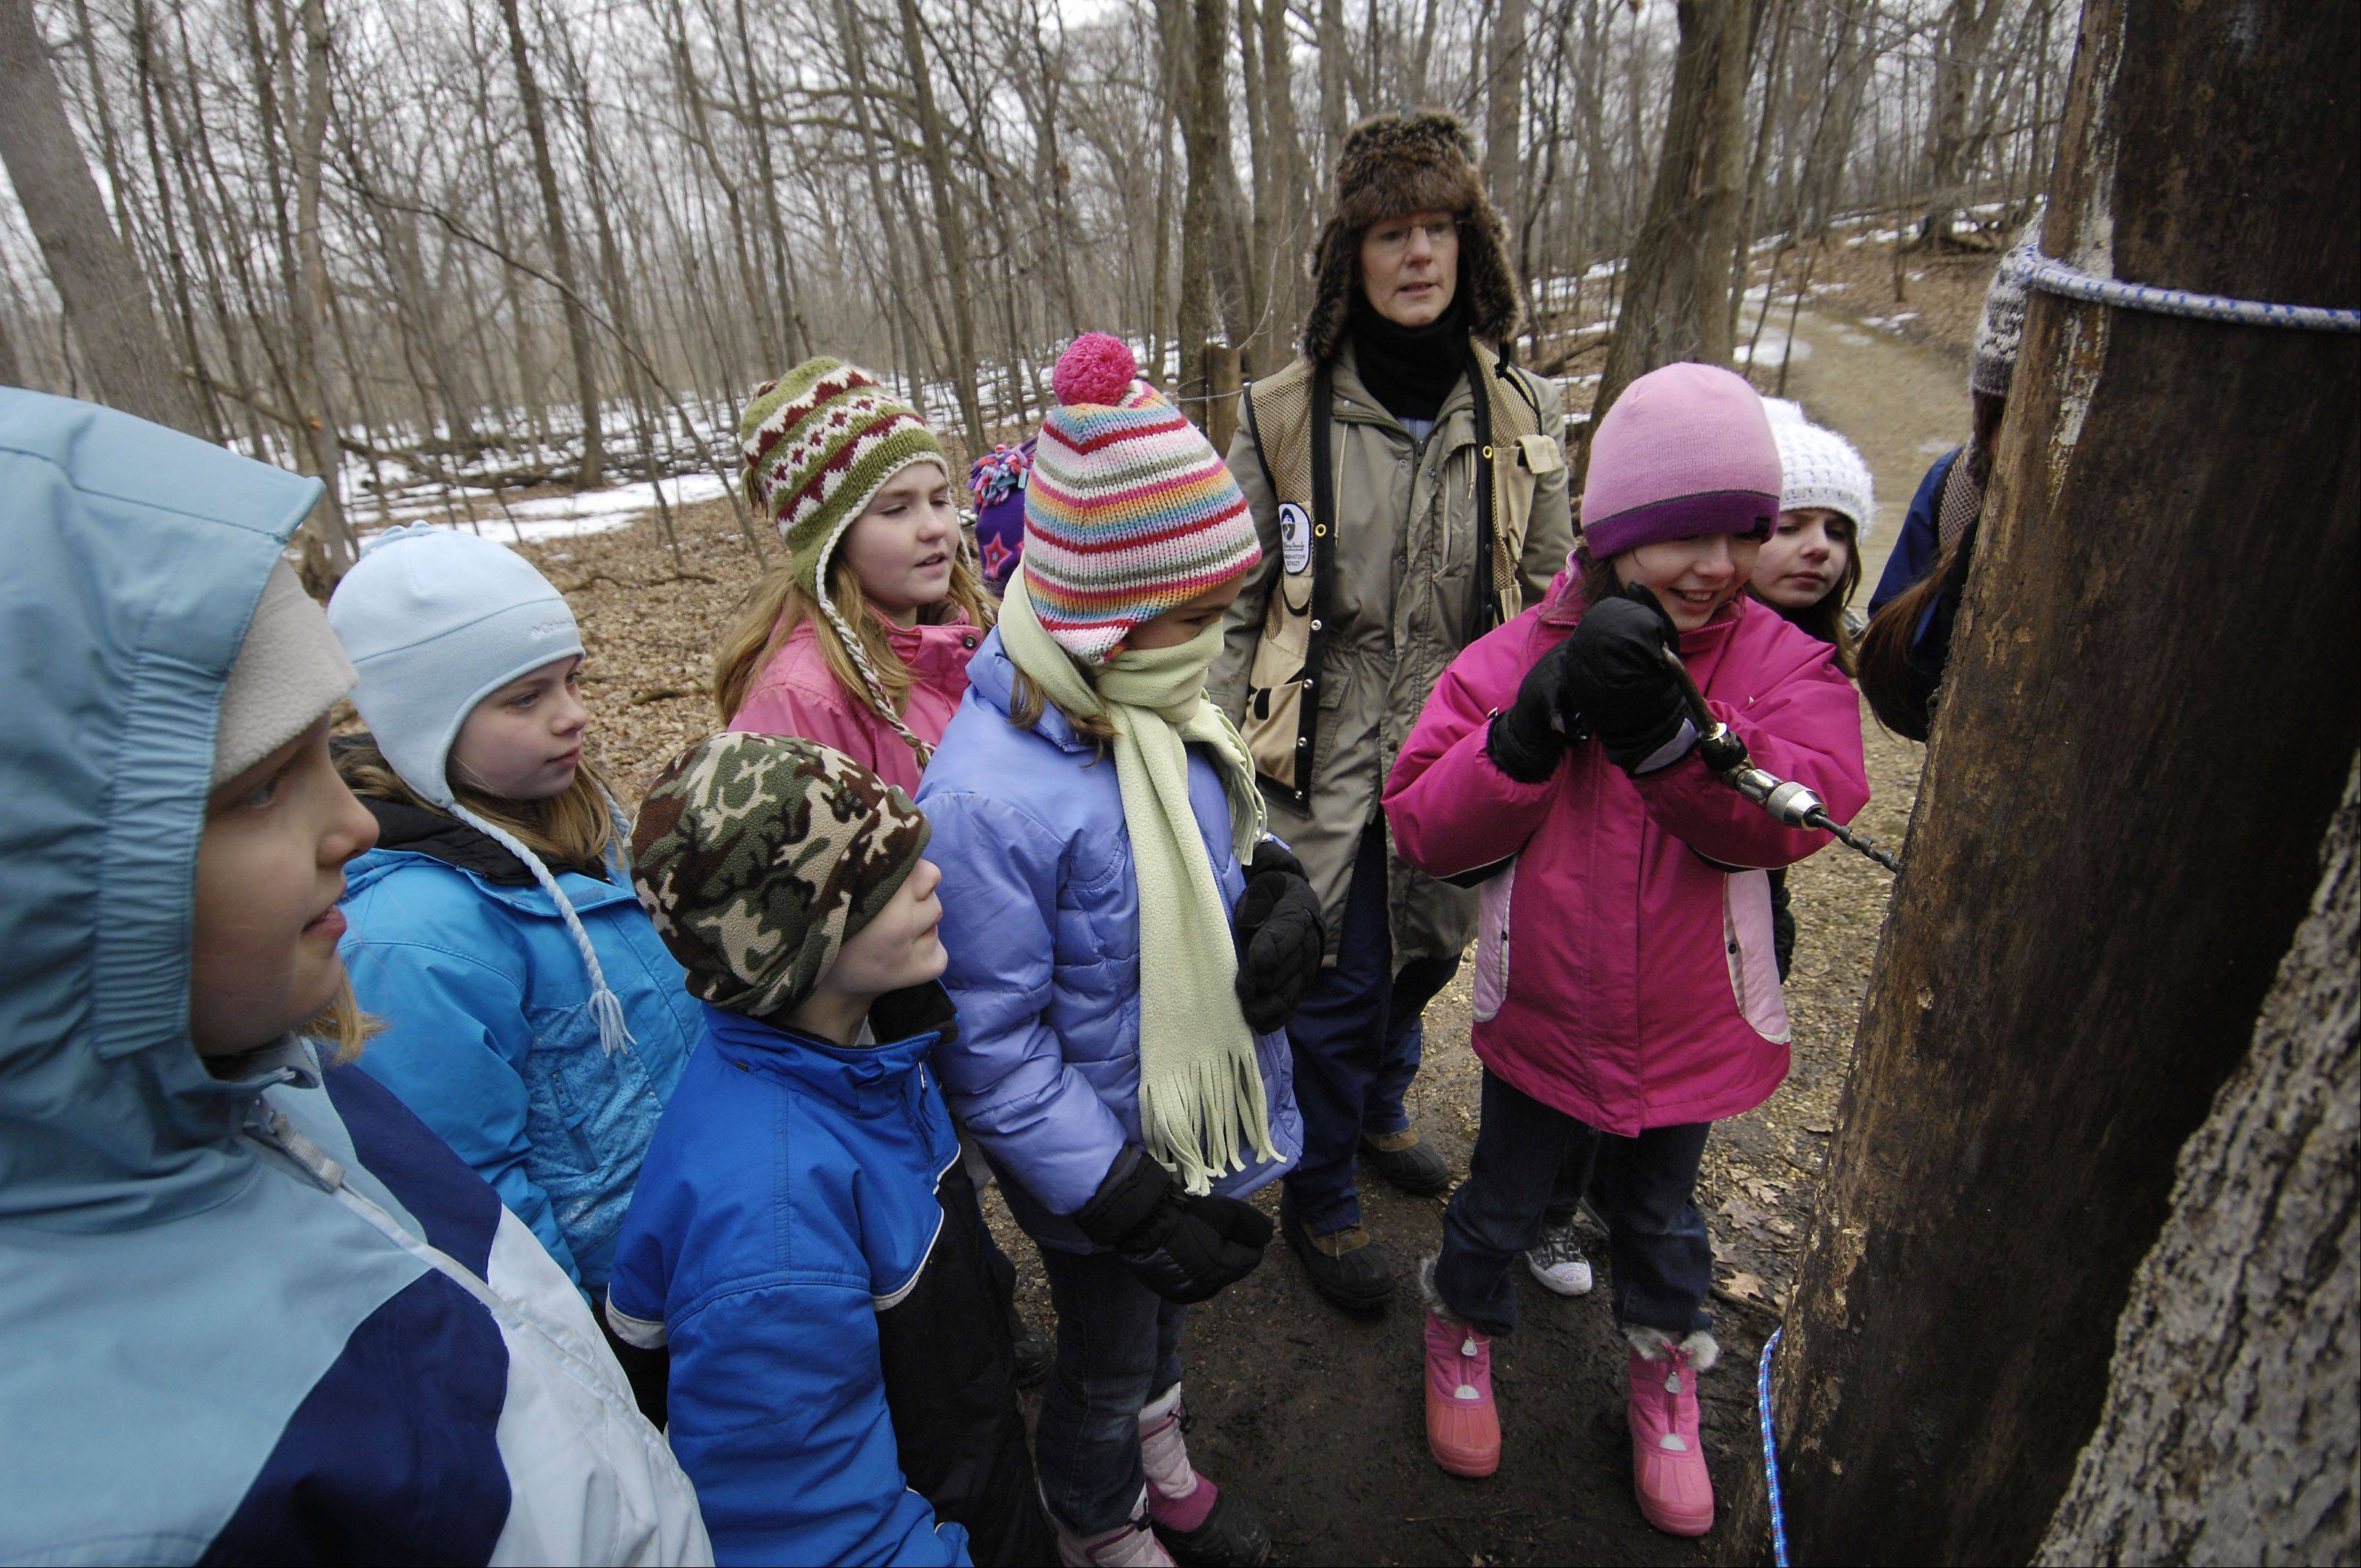 Sara Coleman, 8, practices drilling a maple tree for sap with her Brownie Troop 1176 of Cary at the Festival of the Sugar Maples in Marengo. The McHenry County Conservation District's annual event takes place at Coral Woods, where guests can take an hourlong walk through the process of making maple syrup.